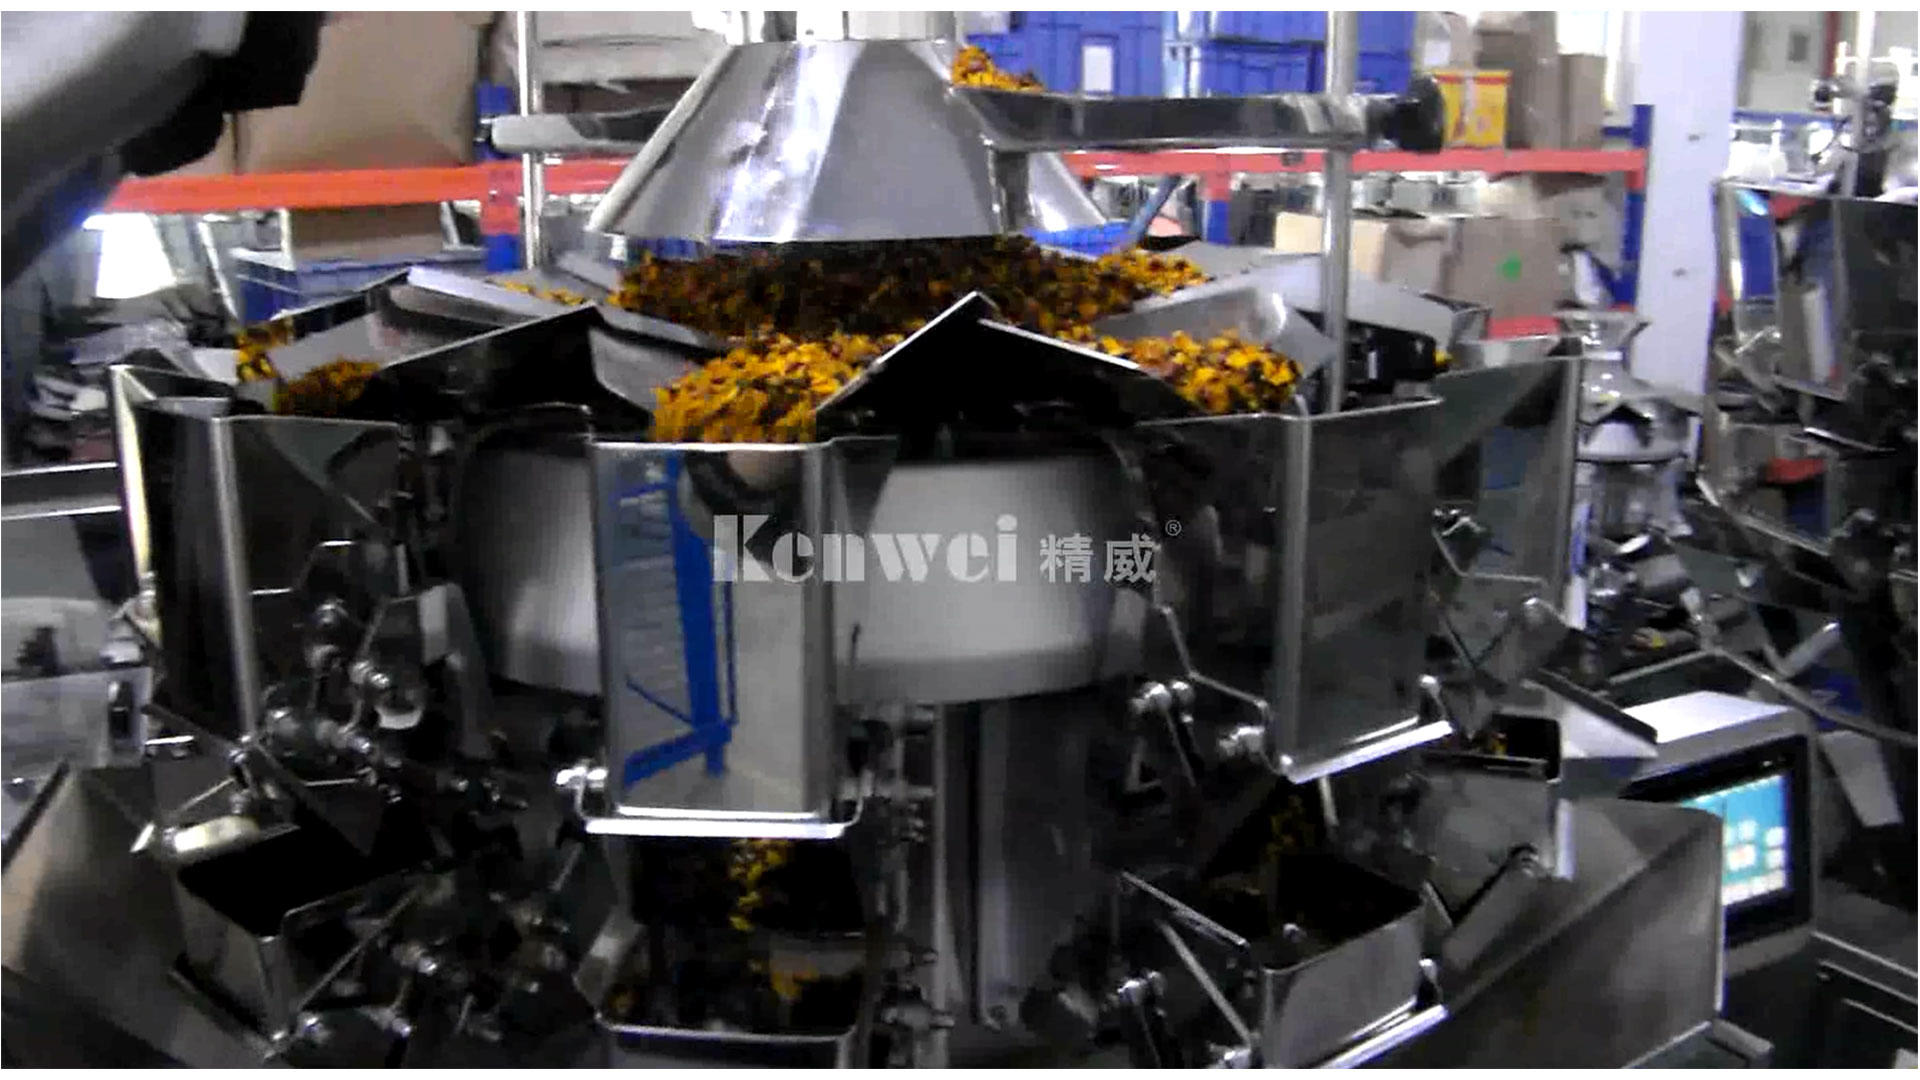 0.5L hopper volume weighing and packaging machine for weighing  packaging chrysanthemum